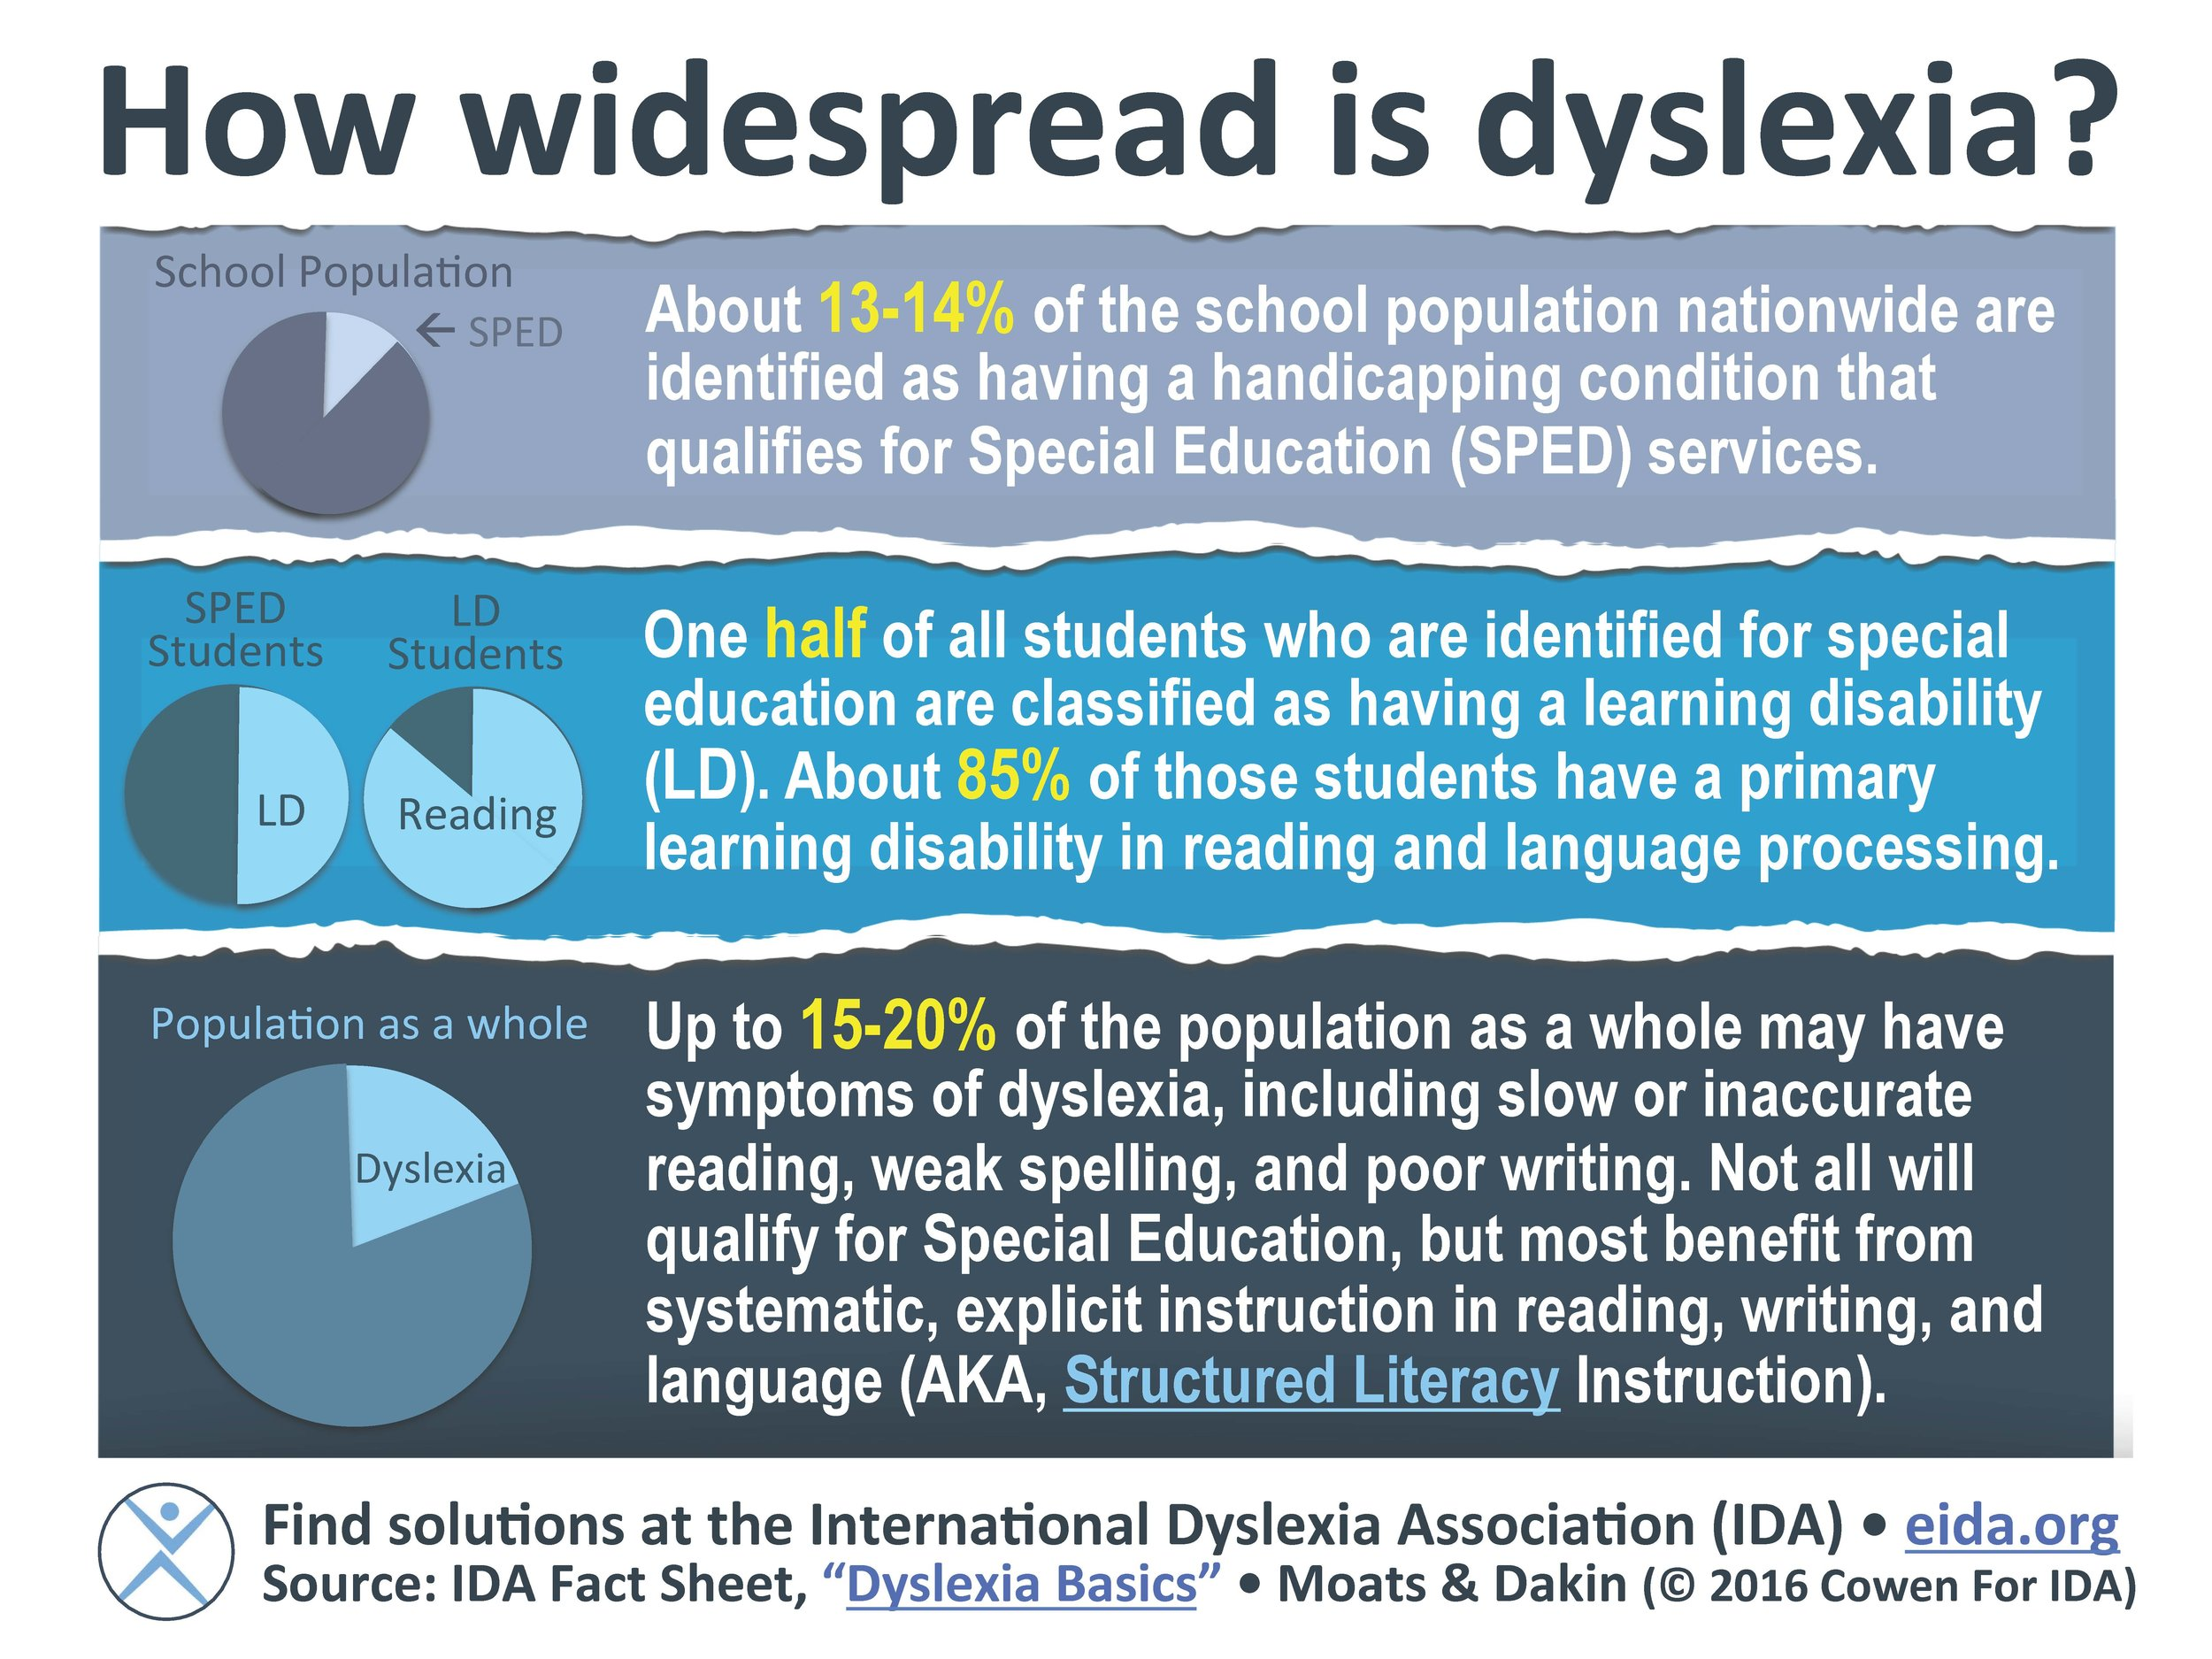 Reprinted from: https://dyslexiaida.org/how-widespread-is-dyslexia/